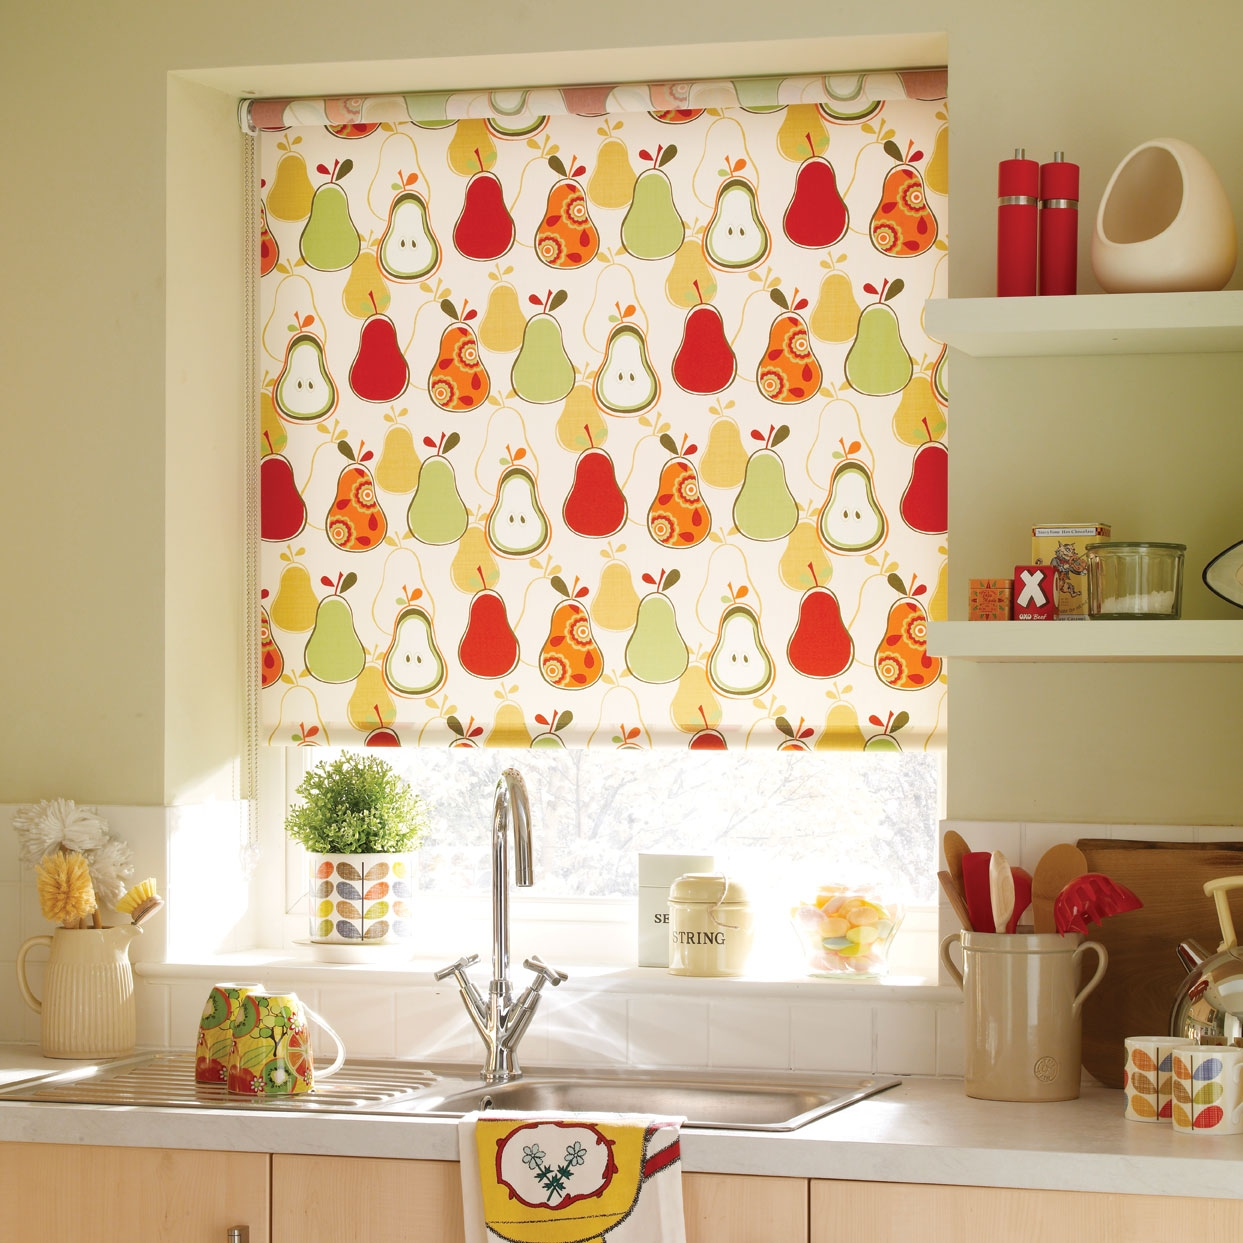 Parklaneinteriorcouk Roller Blinds Throughout Orange Roller Blinds (Image 12 of 15)